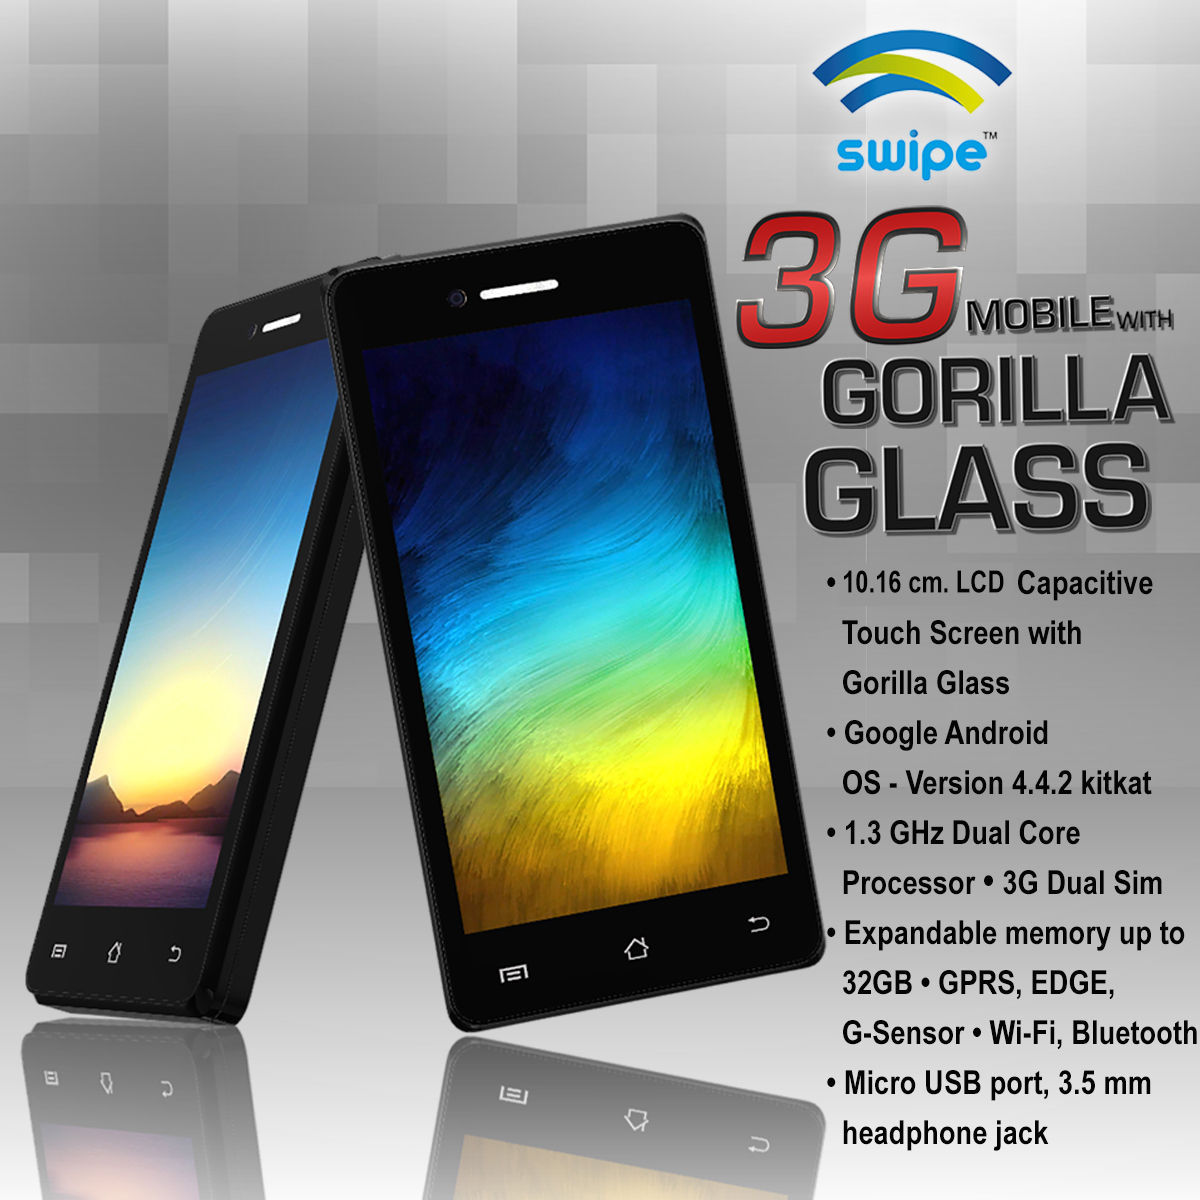 Buy Swipe 3g Mobile With Gorilla Glonline At Best Price In India On Naaptol Com